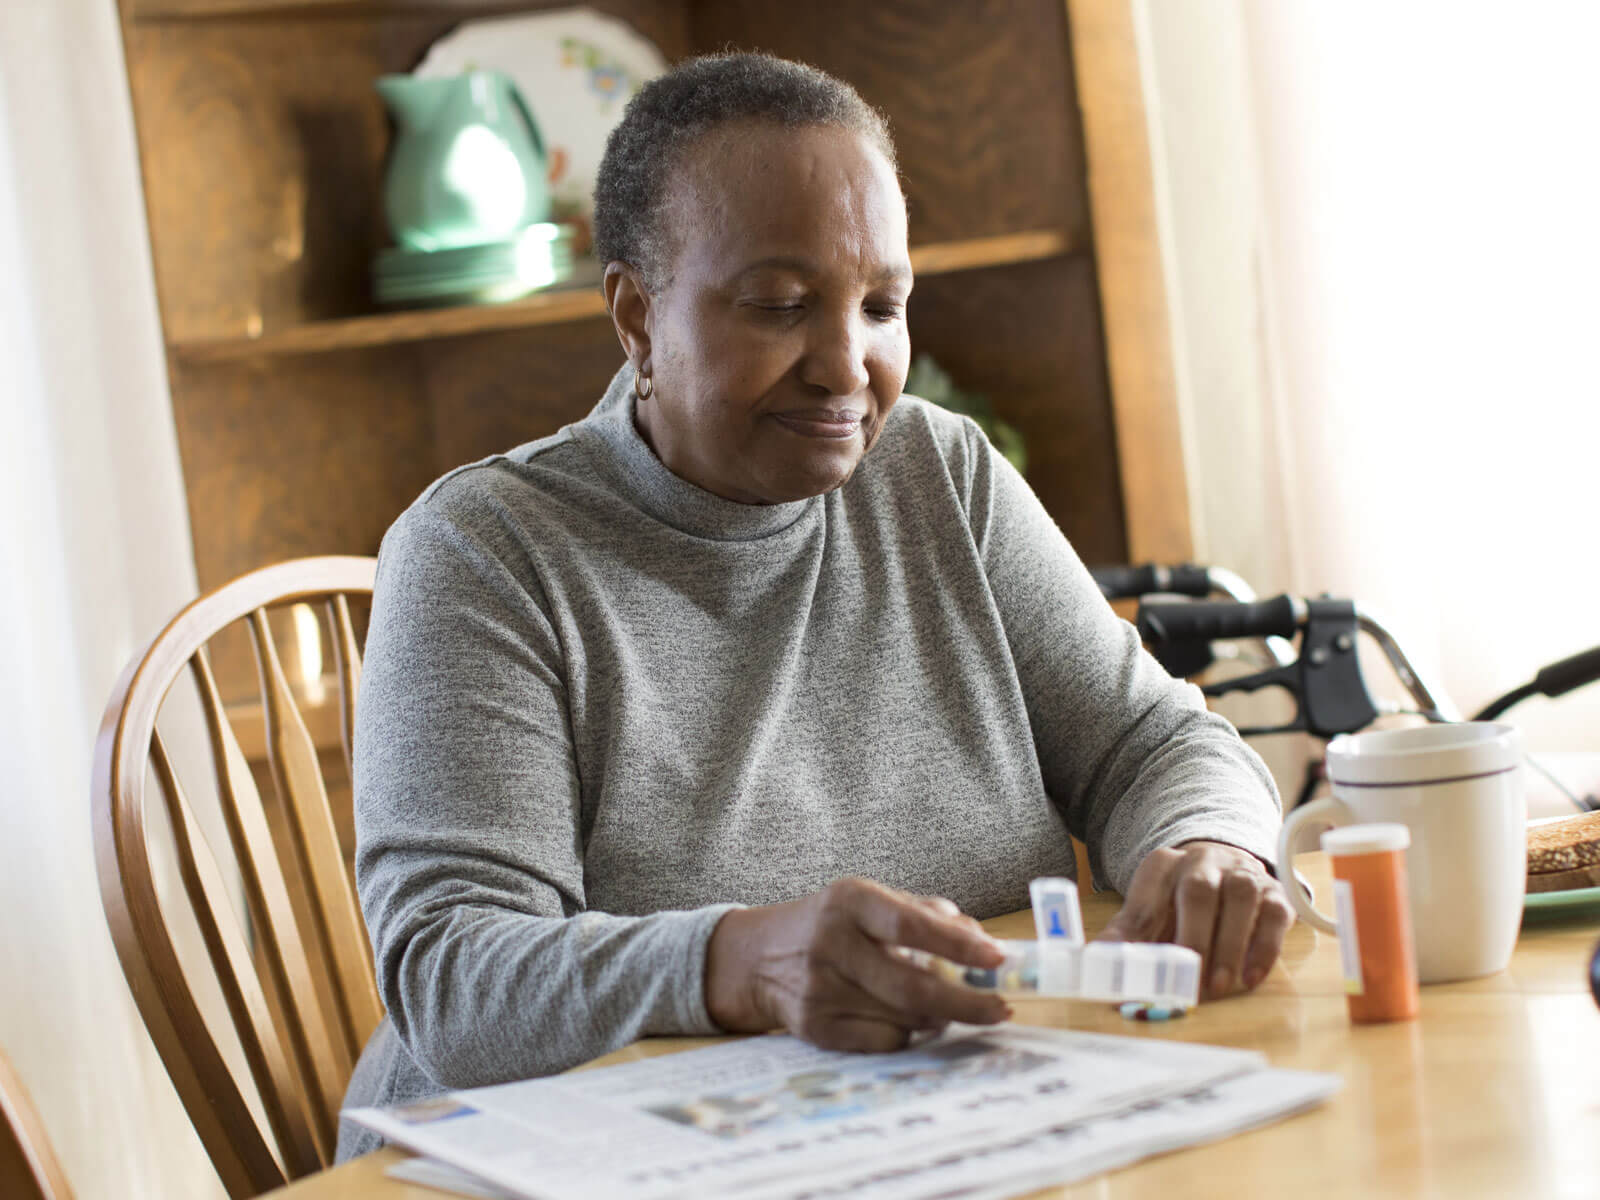 A woman sits at a kitchen table organizing prescriptions into a weekly pill box.